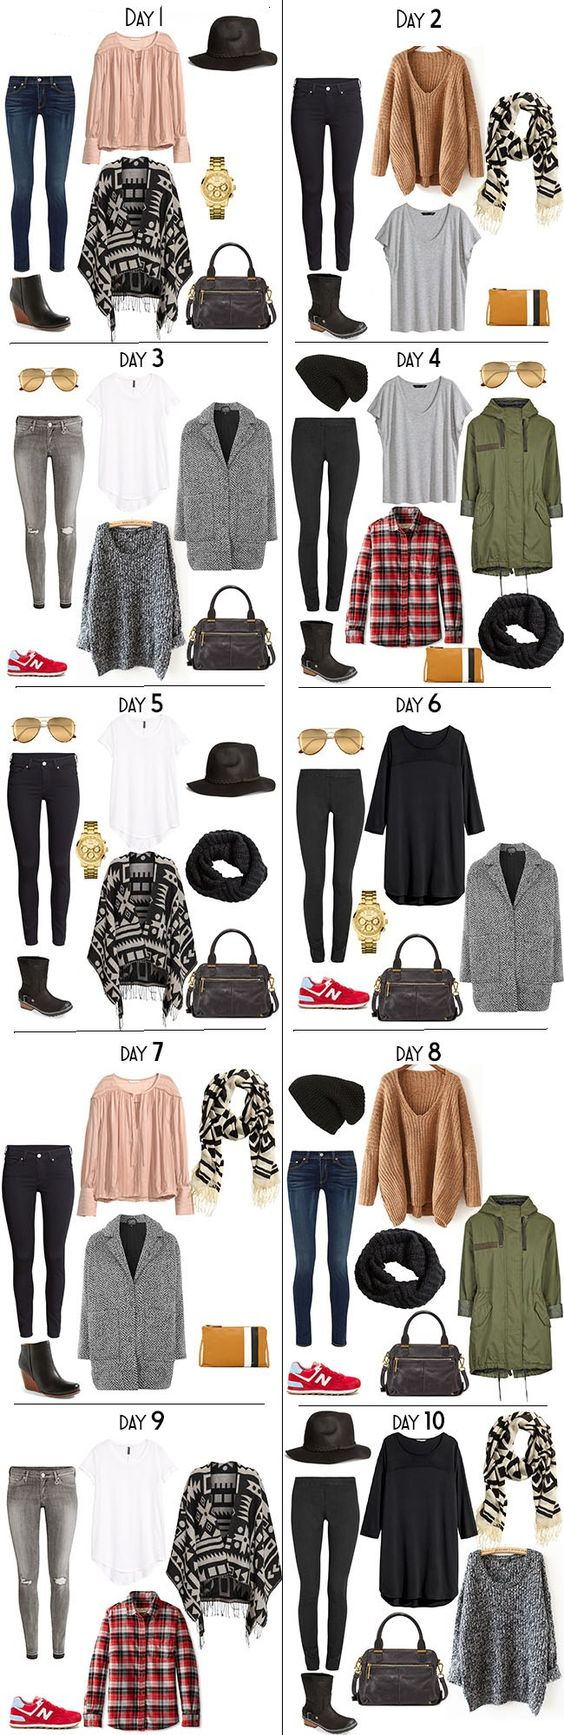 10 Days in New Zealand packing list: